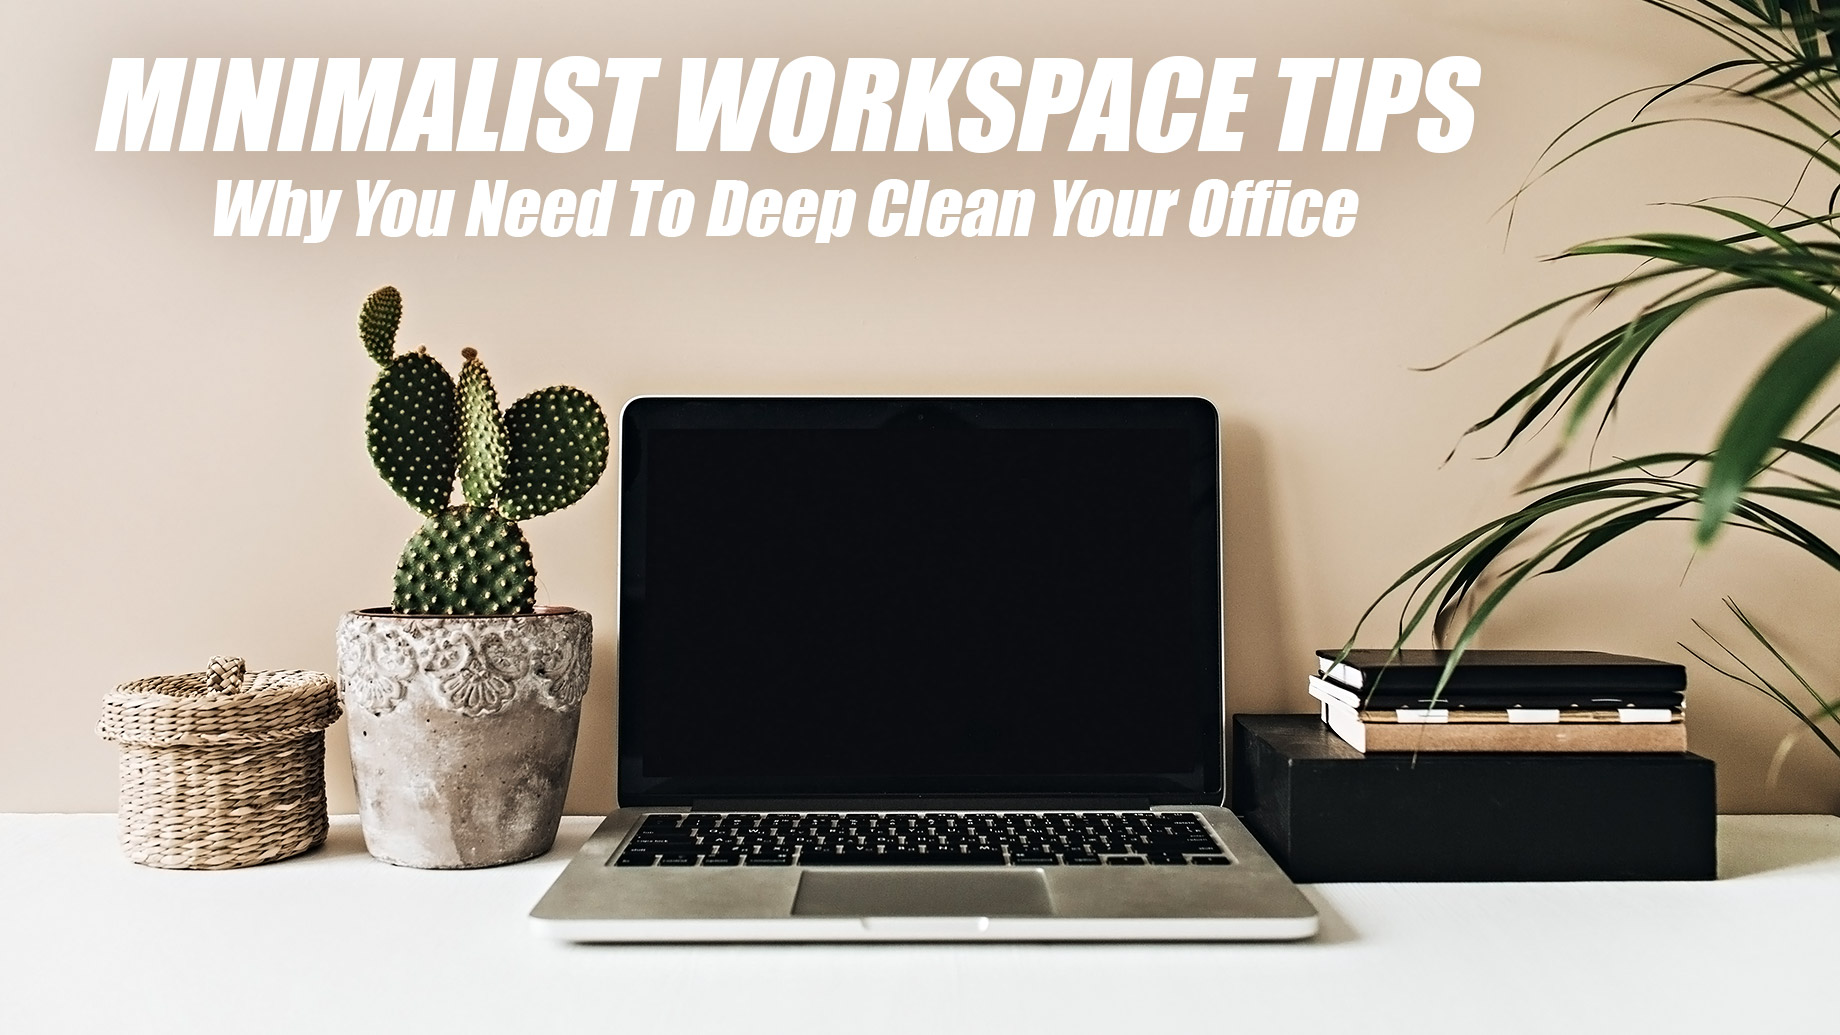 Minimalist Workspace Tips - Why You Need To Deep Clean Your Office